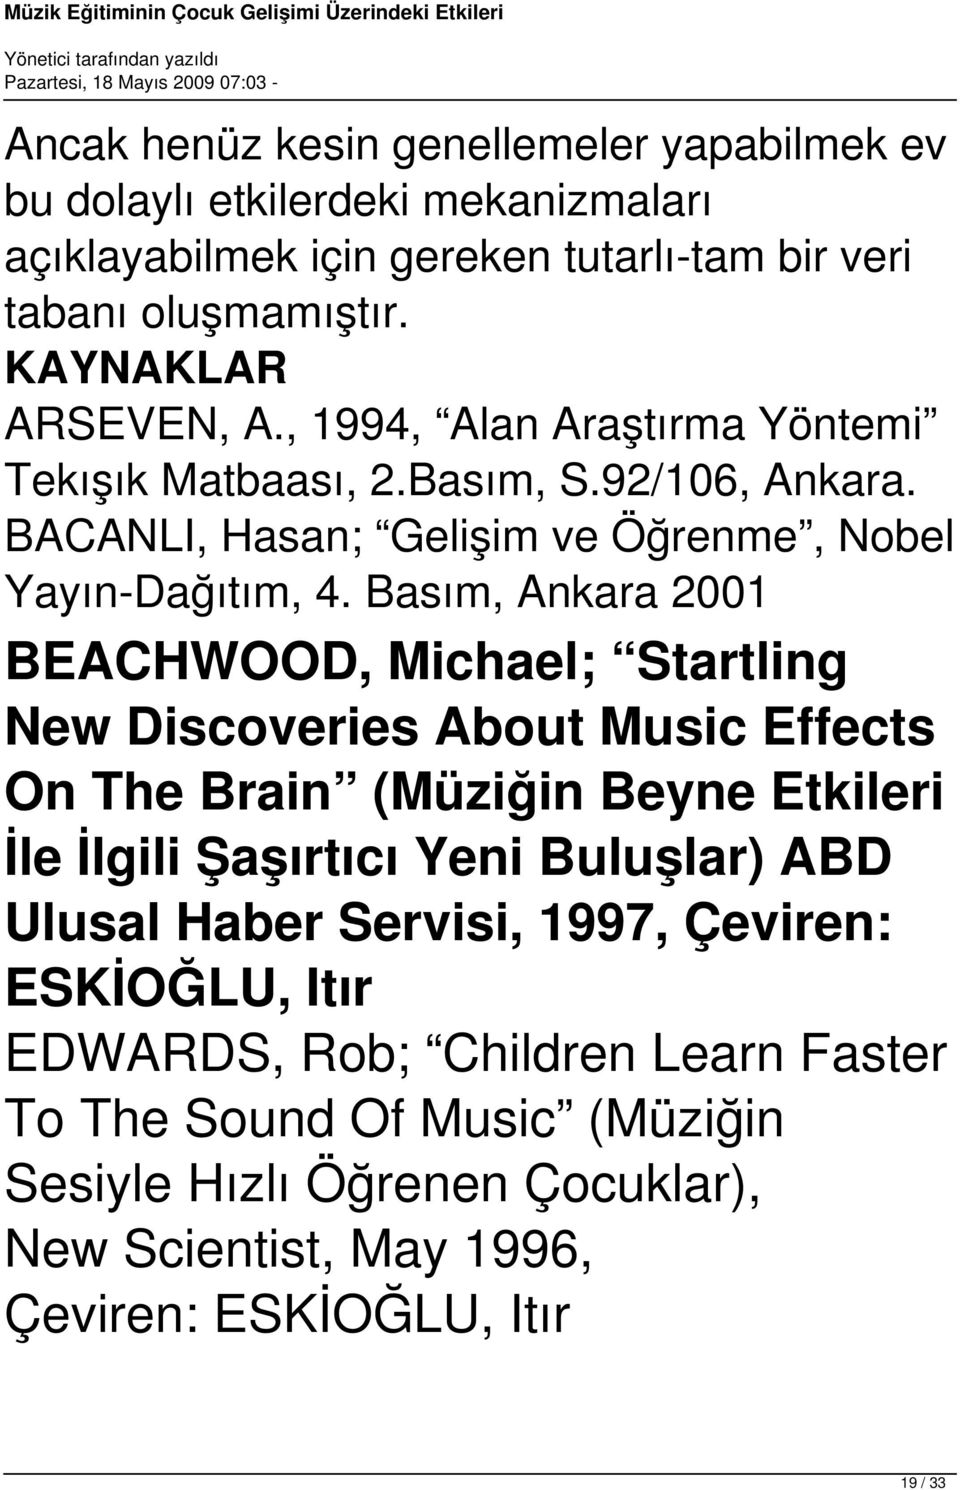 Basım, Ankara 2001 BEACHWOOD, Michael; Startling New Discoveries About Music Effects On The Brain (Müziğin Beyne Etkileri İle İlgili Şaşırtıcı Yeni Buluşlar) ABD Ulusal